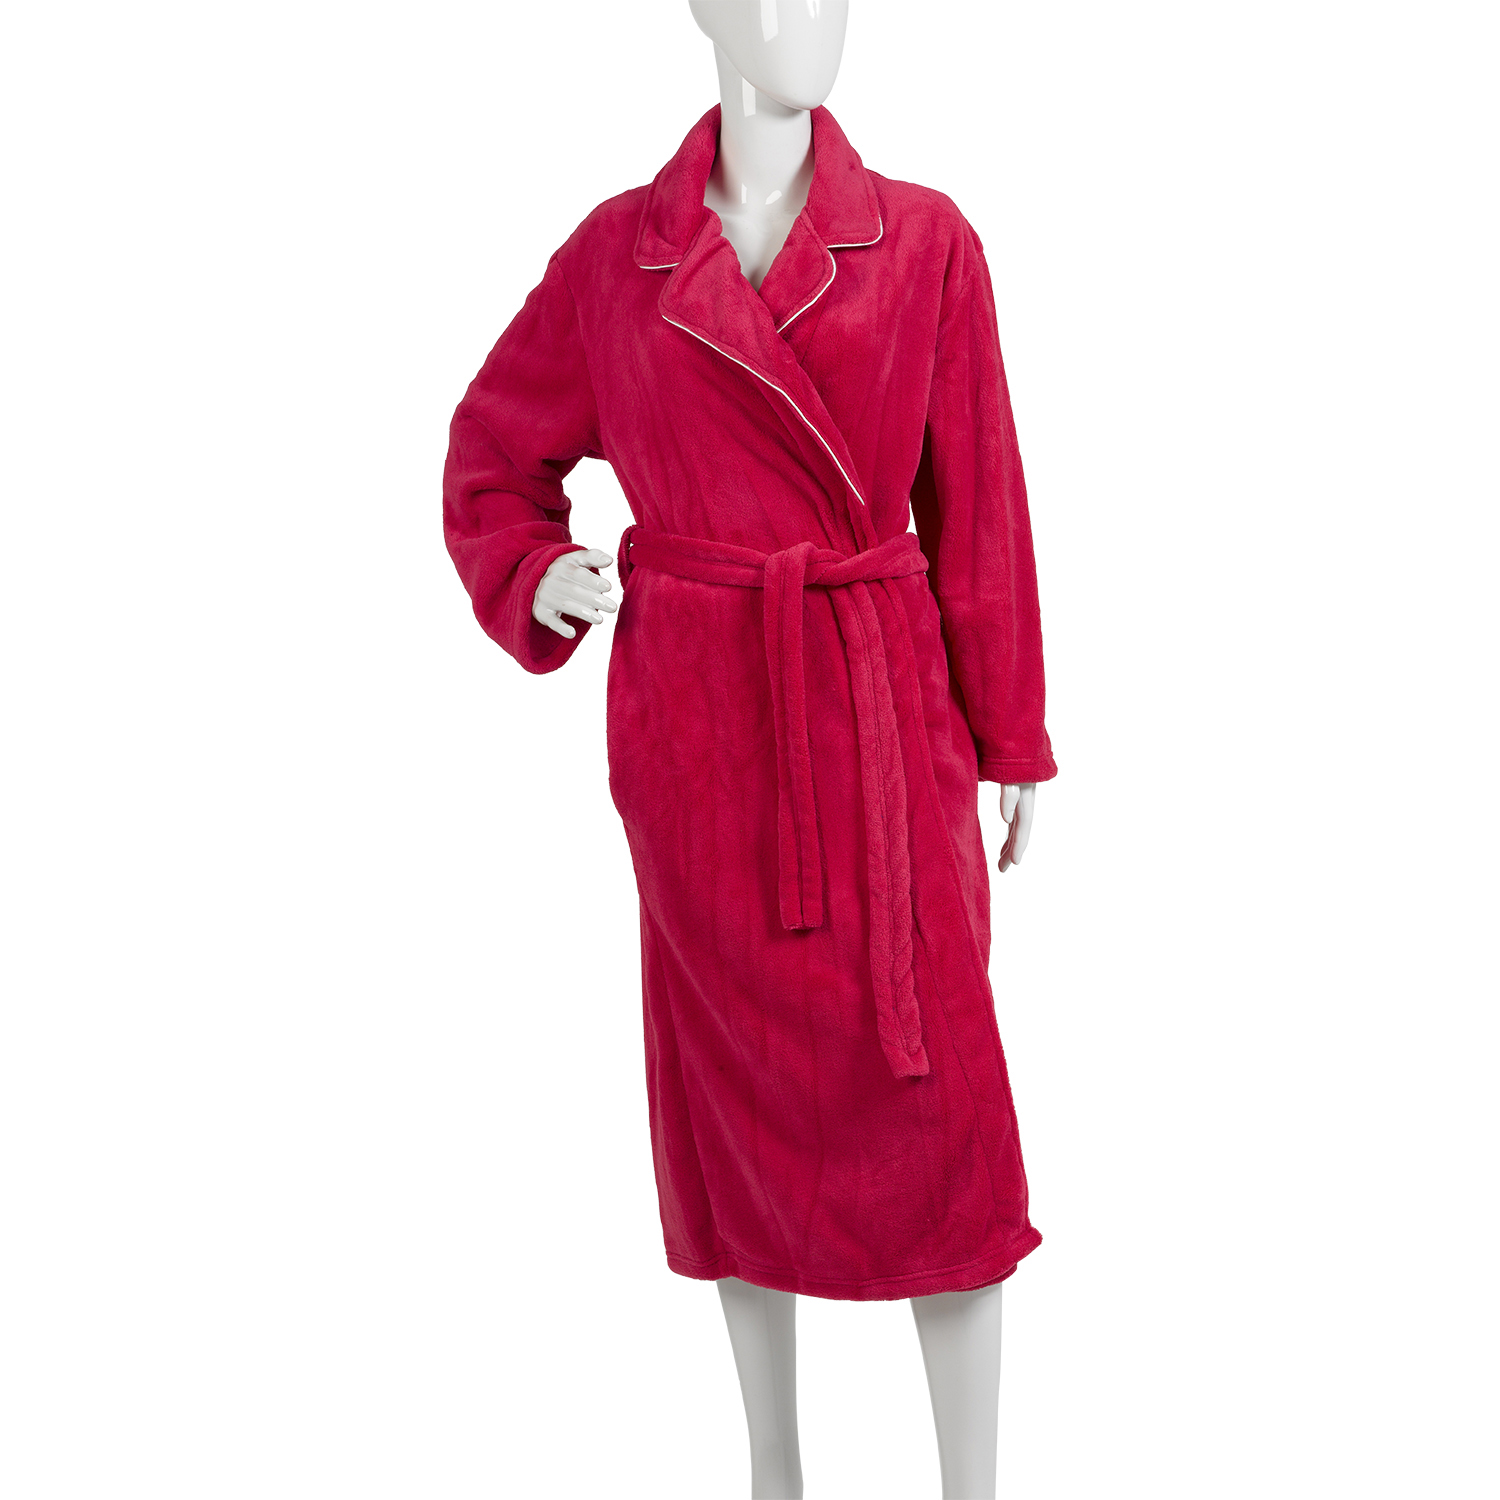 Ladies Soft Coral Fleece Plain Satin Trim Robe Womens Nightwear ...